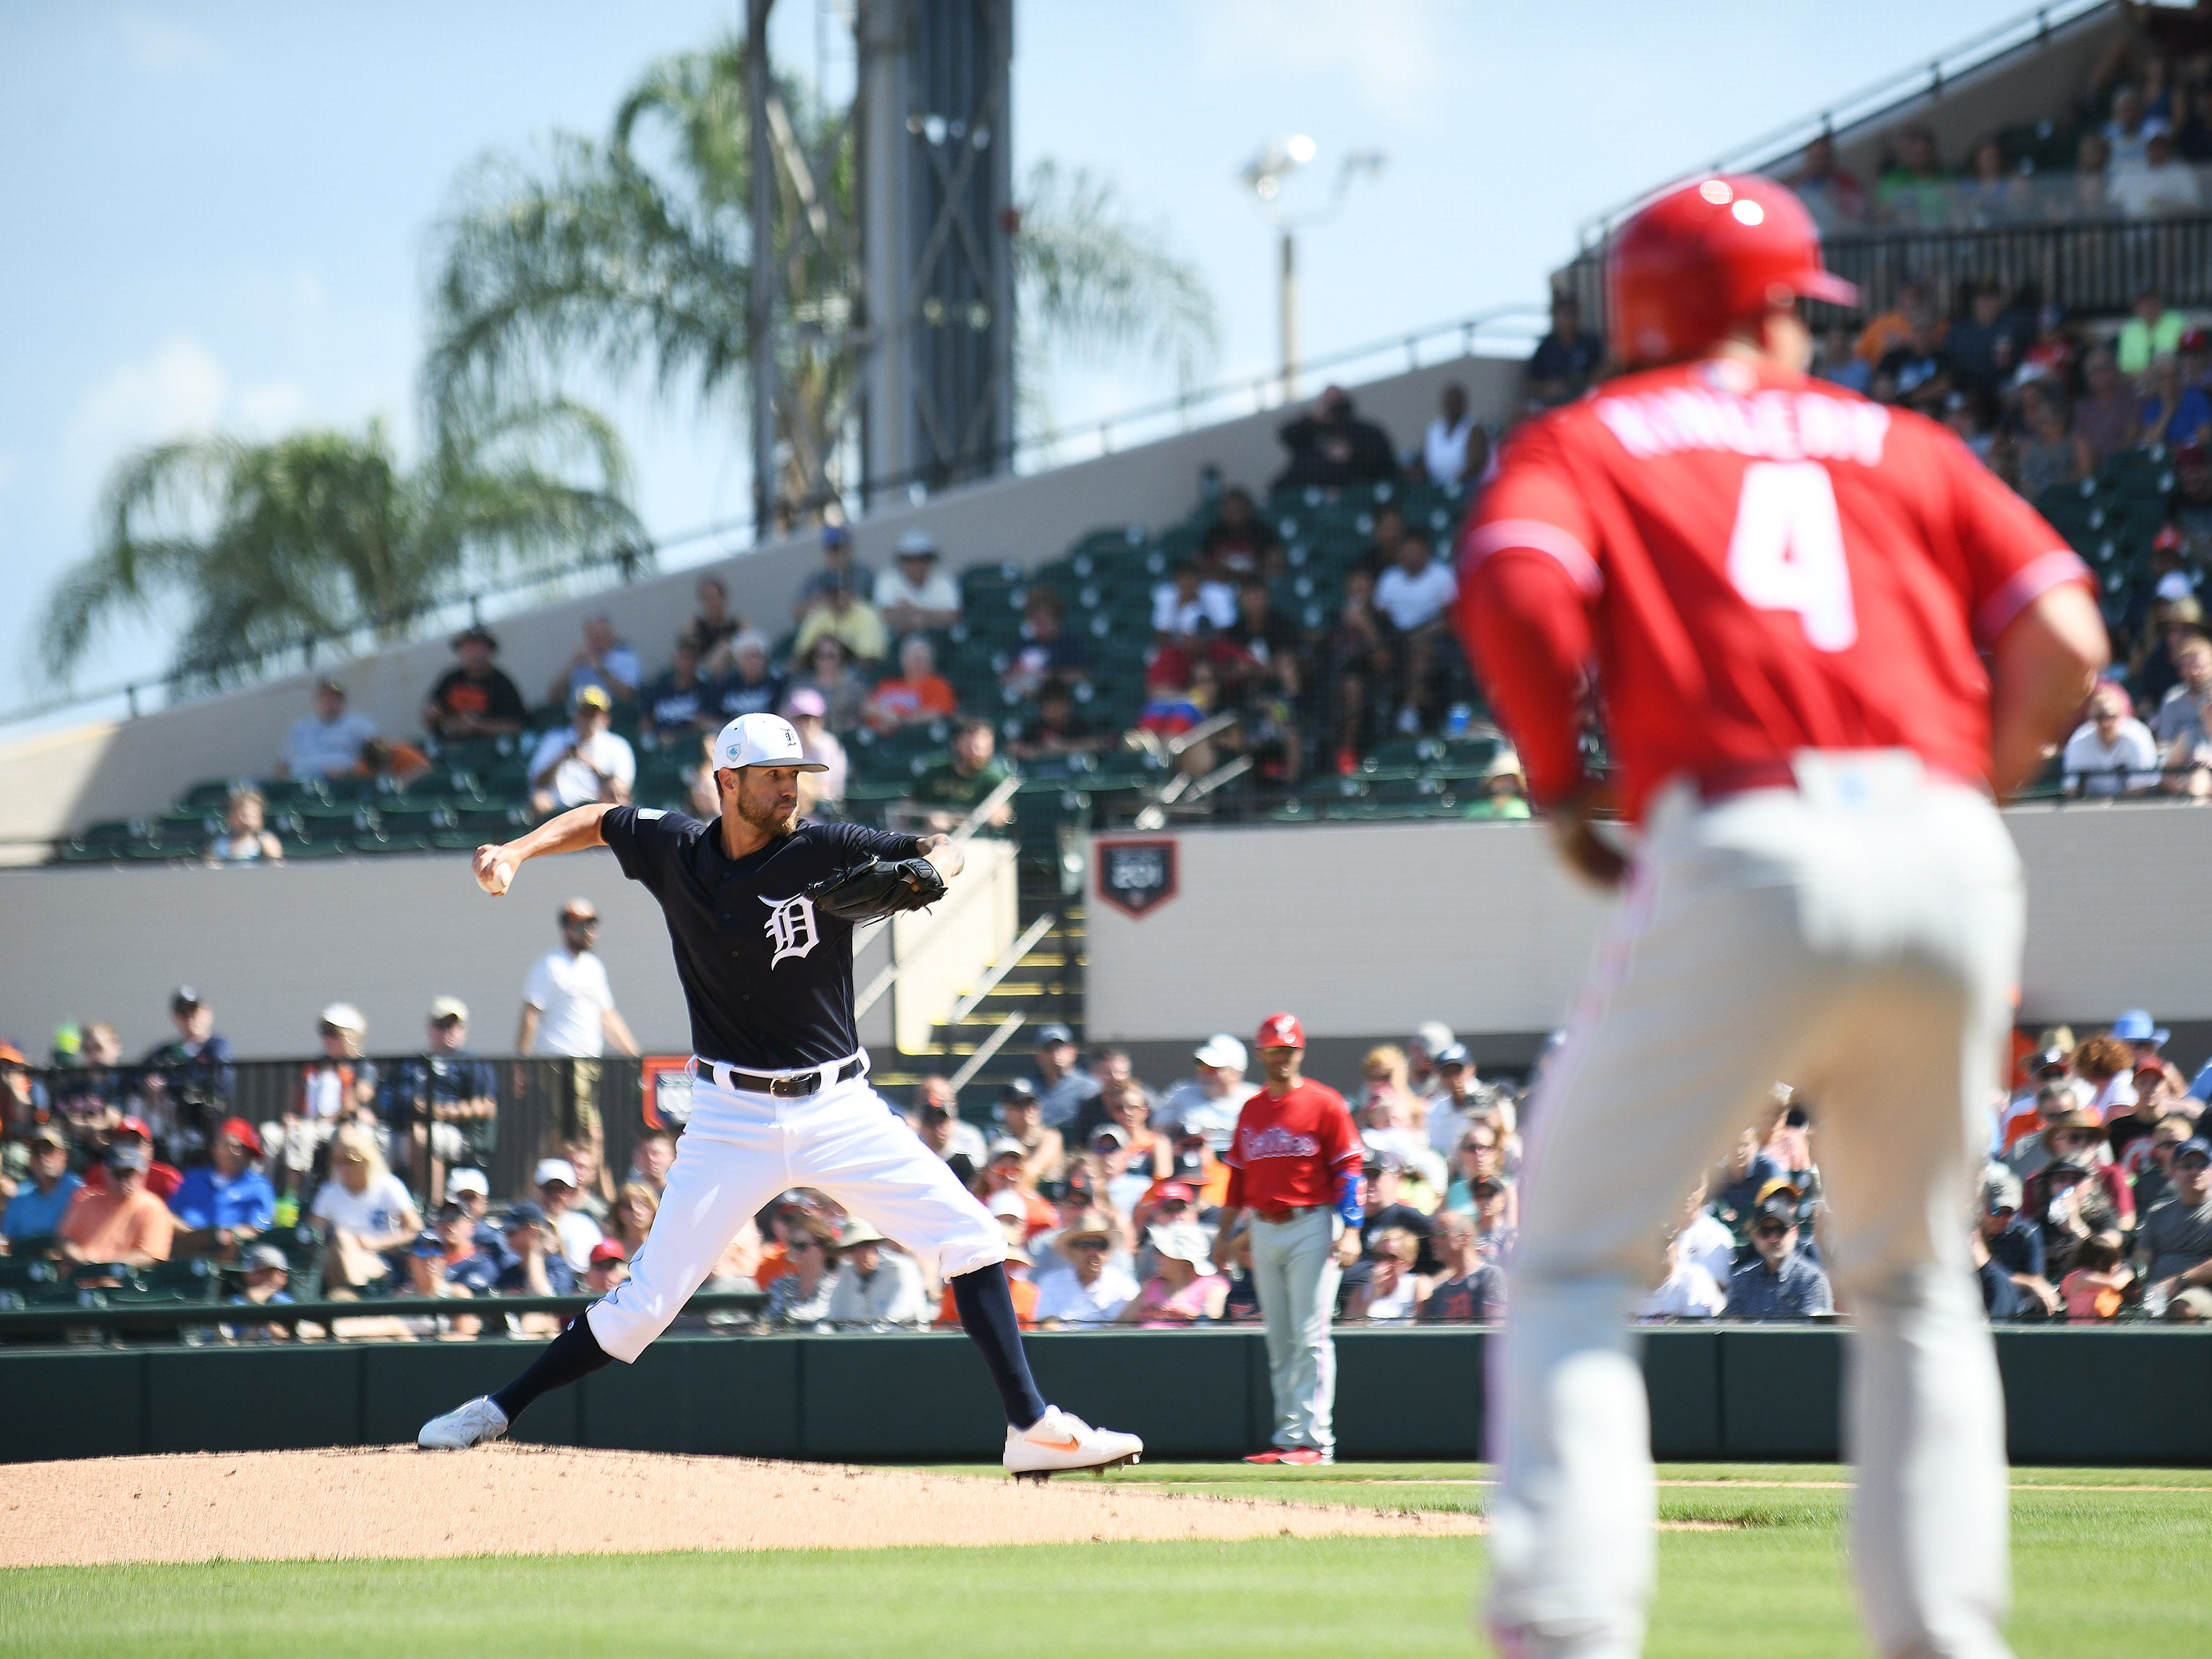 With a man on third, Tigers pitcher Shane Greene works in the third inning.